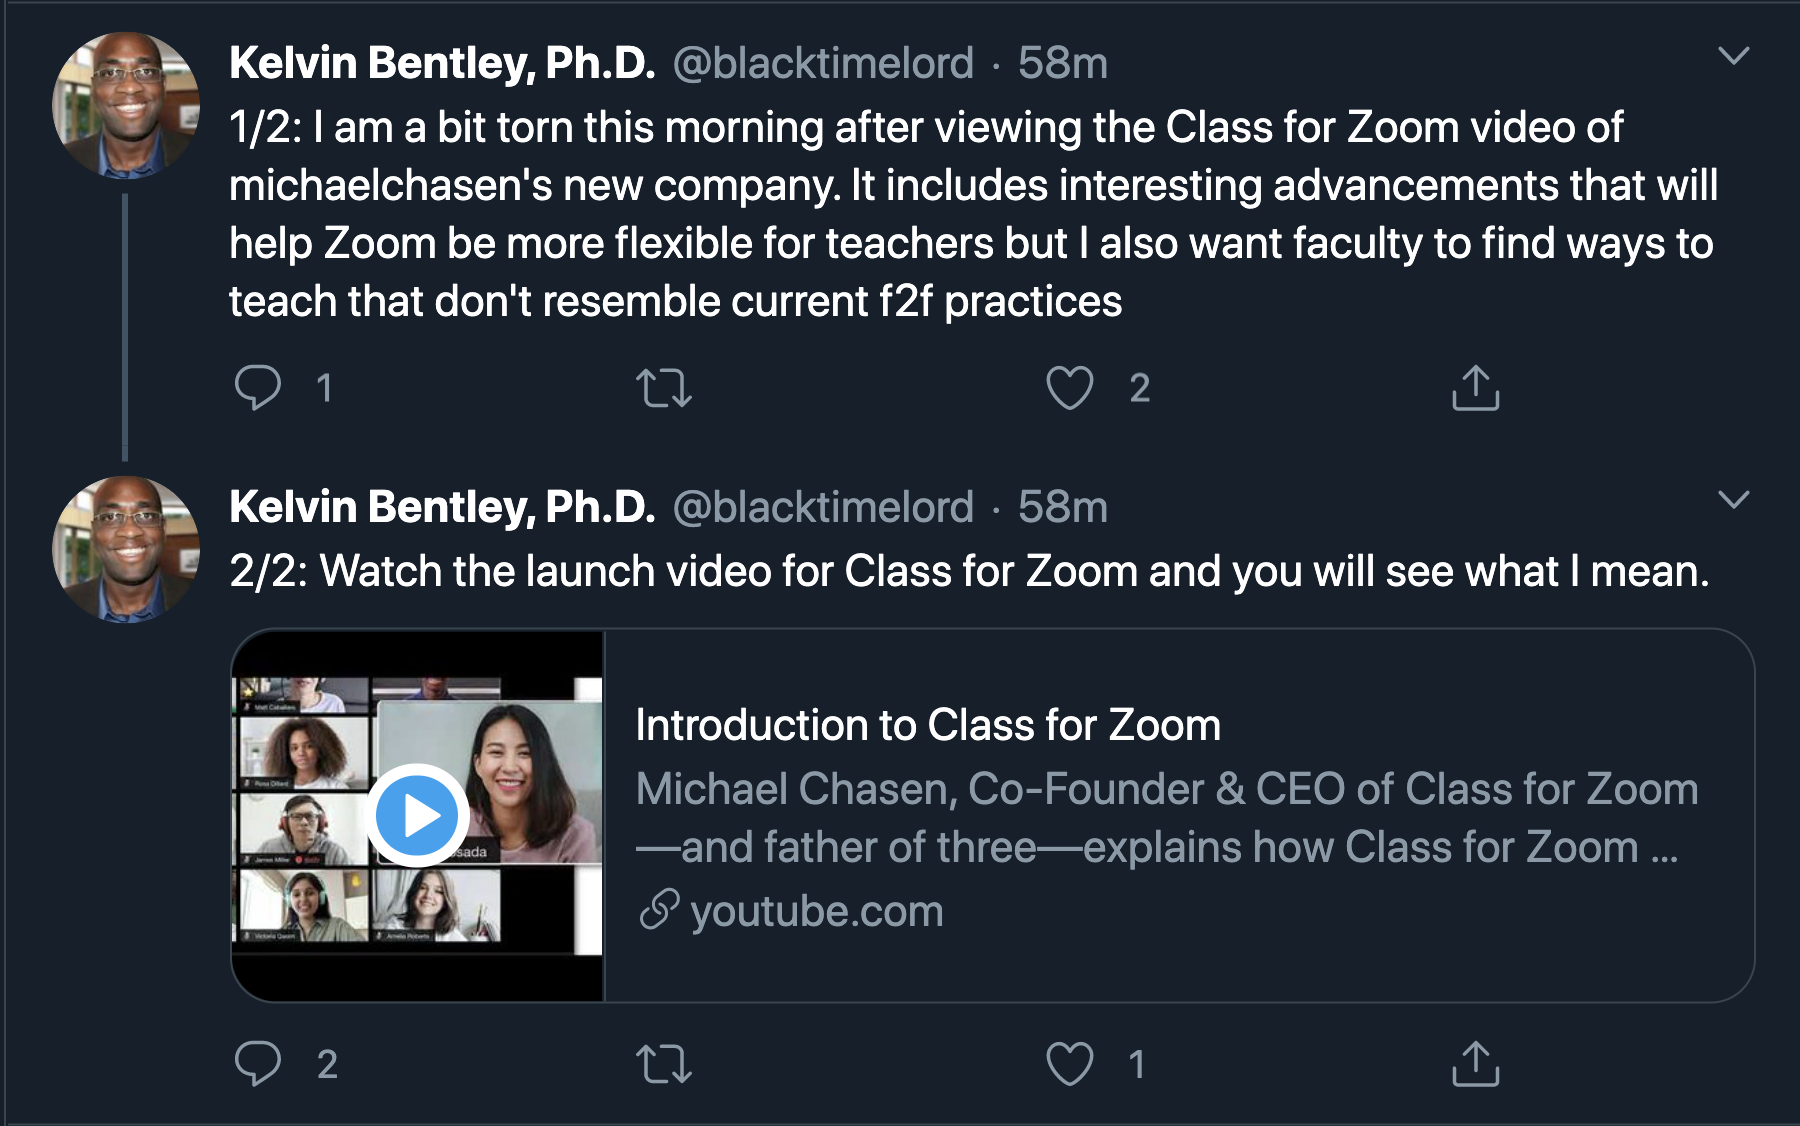 "Kelvin Bentley, Ph.D. ""I am a bit torn this morning after viewing the Class for Zoom video of Michael Chasen's new company. It includes intereting advancements that will help Zoom be more flexible for teachers but I also want faculty to find ways to teach that don't resemble current face-to-face practices. Watch the launch video for Class for Zoom and you will see what I mean."""